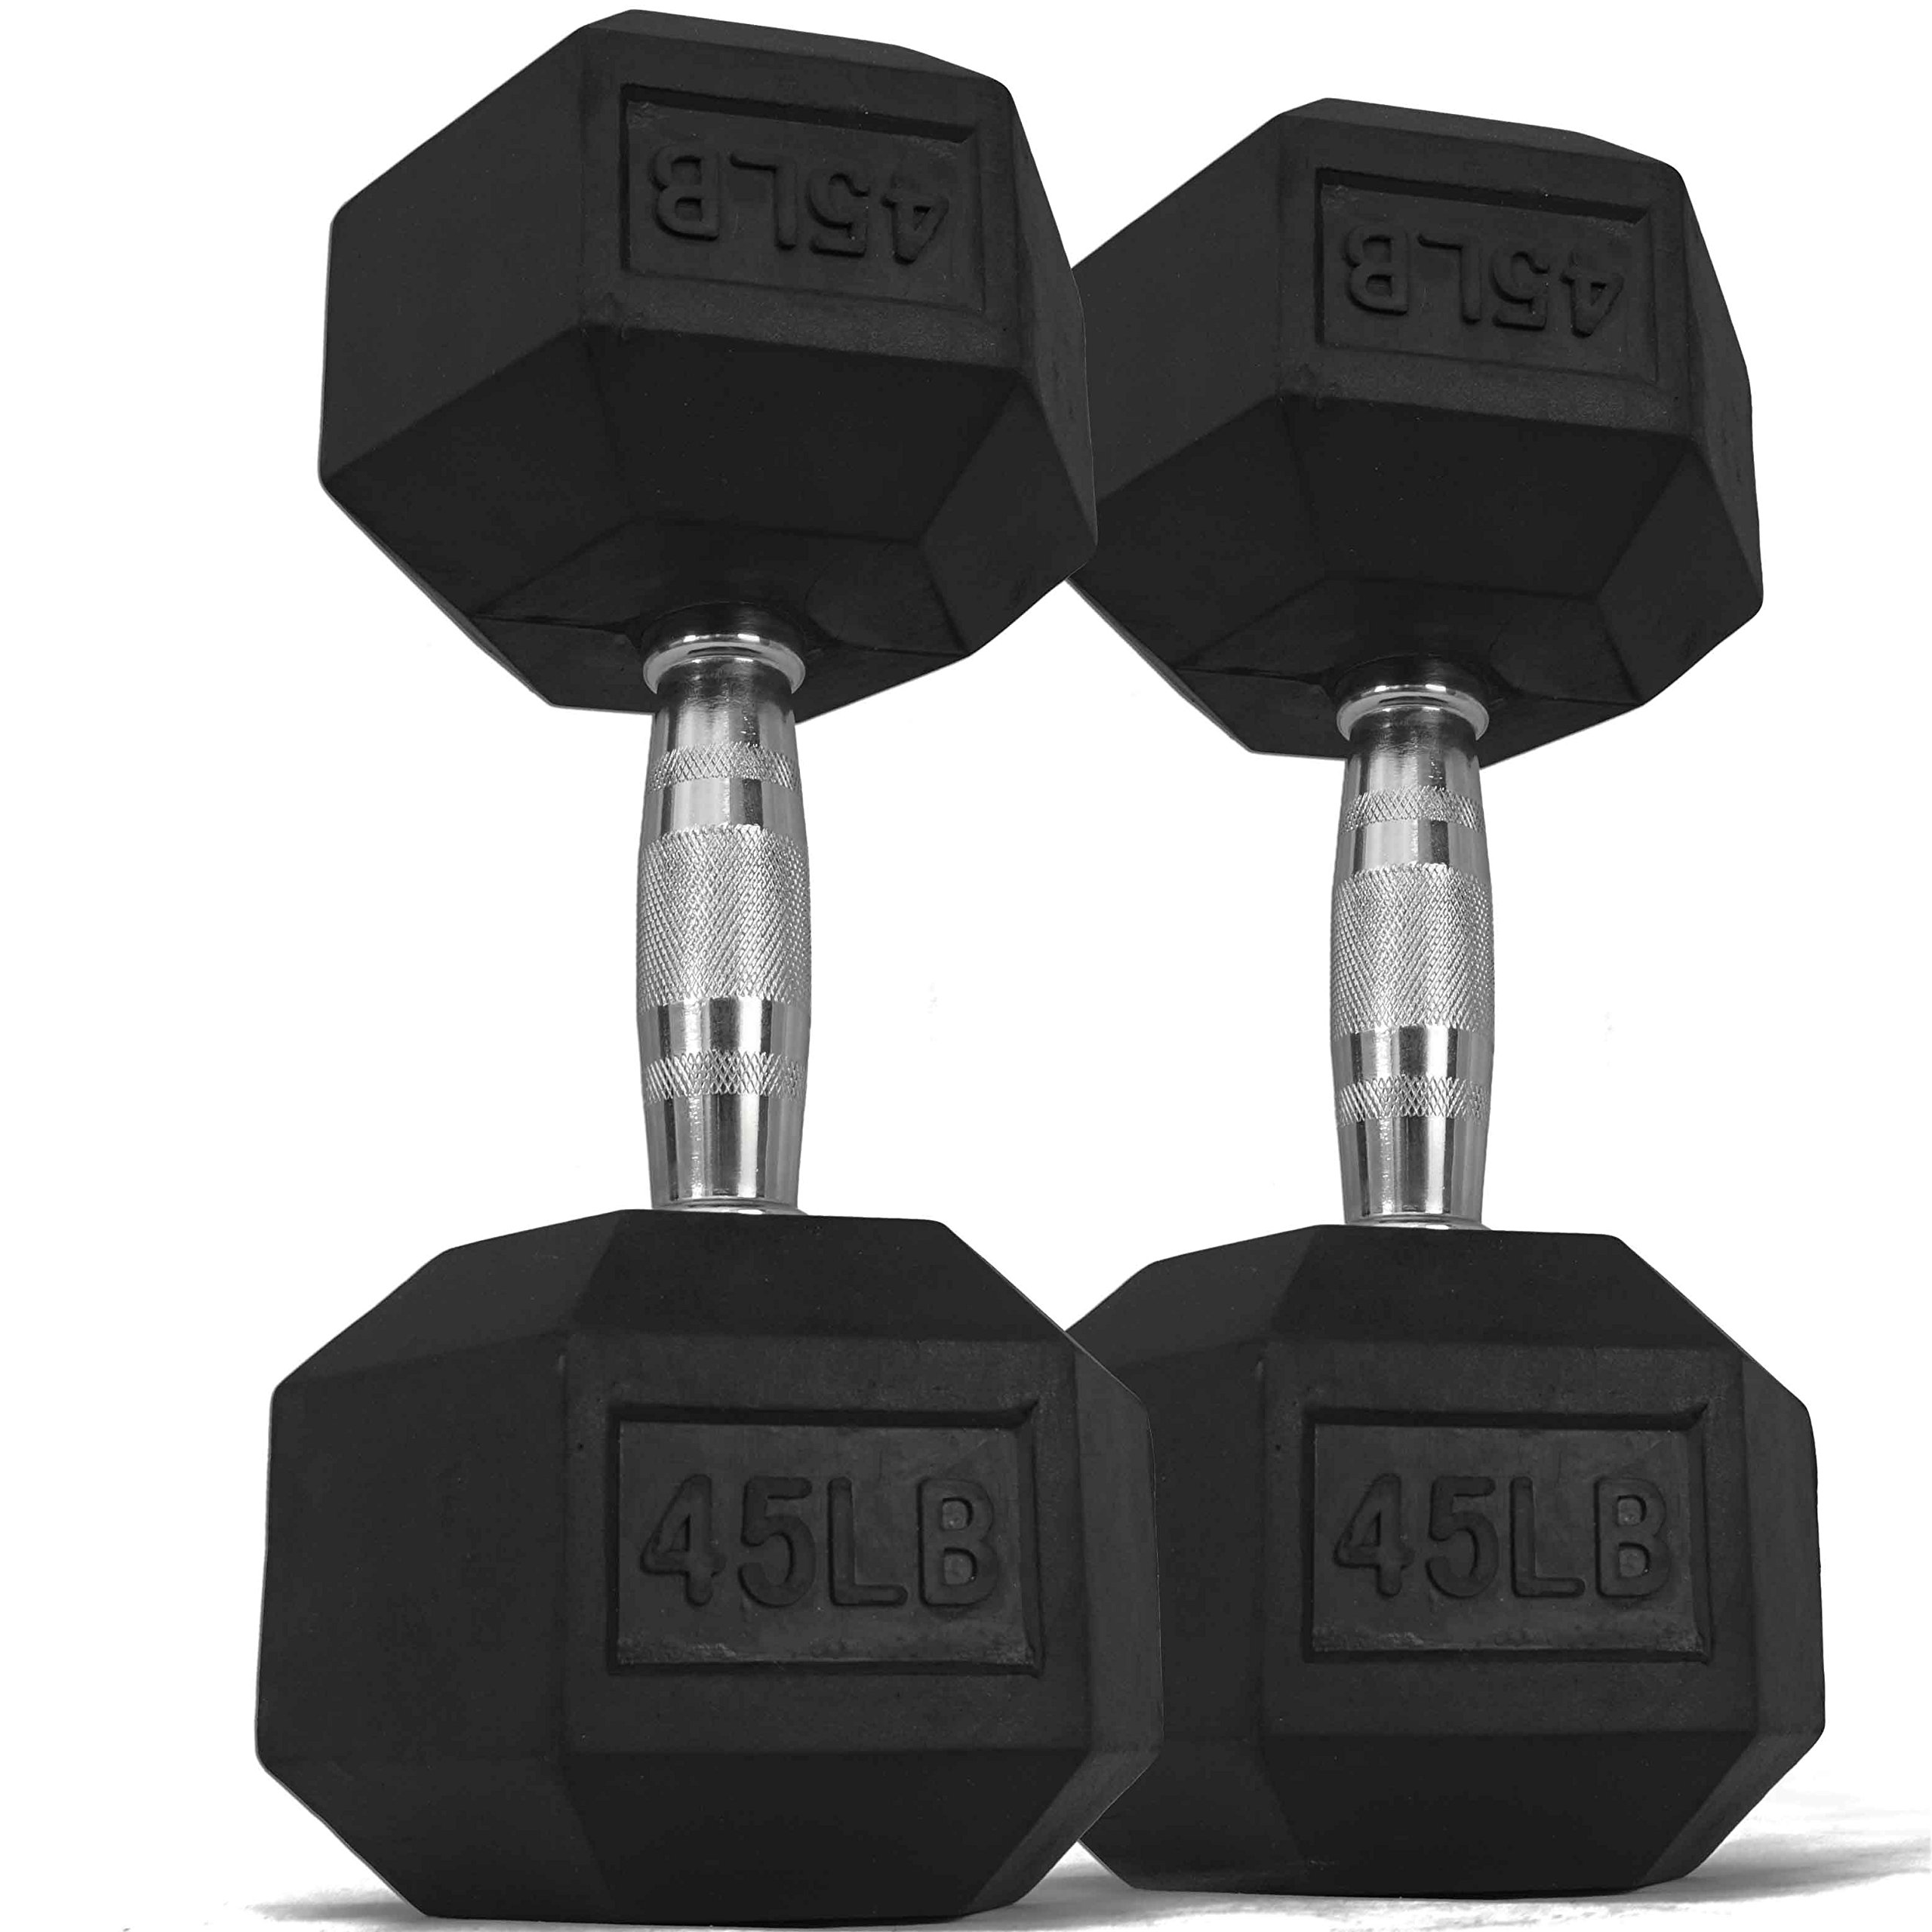 Pair 45 lb Black Rubber Coated Hex Dumbbells Weight Training Set 90 lb Fitness